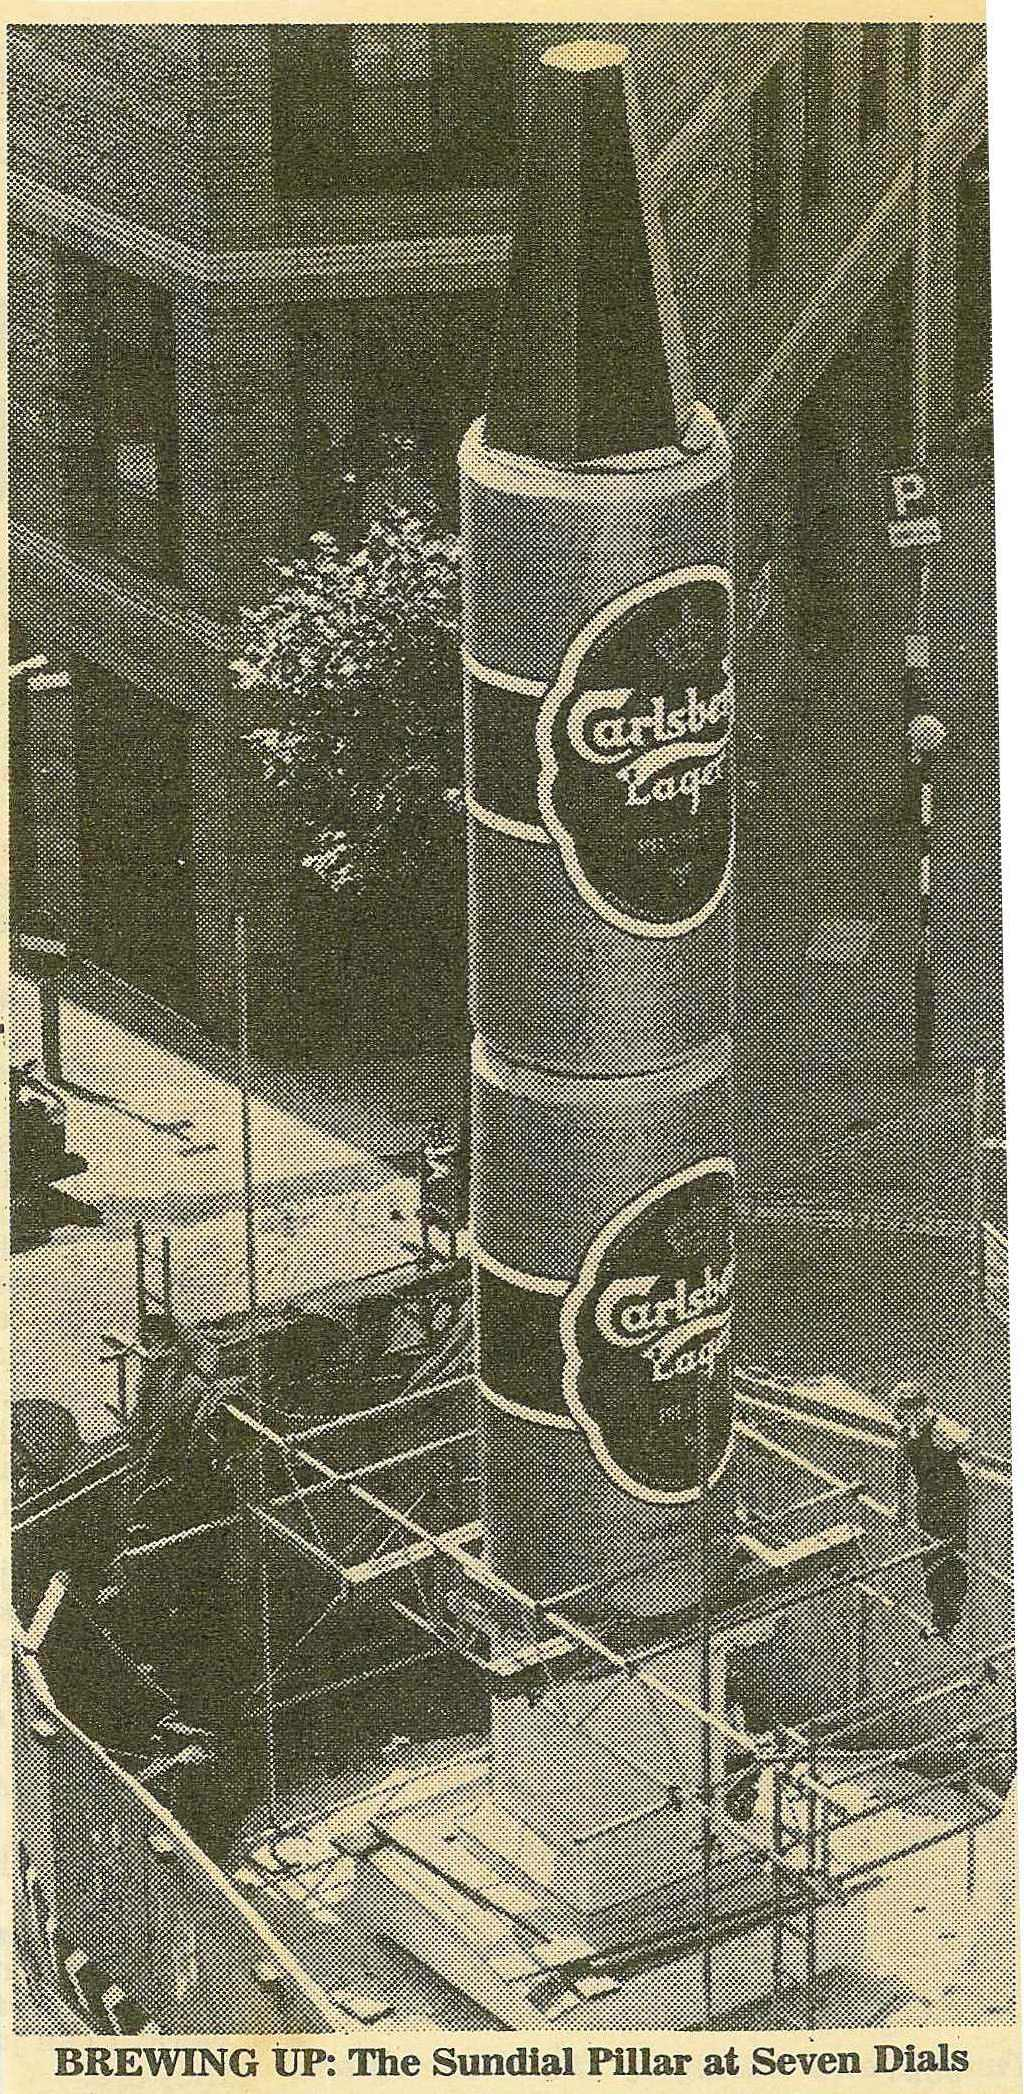 Constructing the giant lager cans to cover the pilar before unveiling.